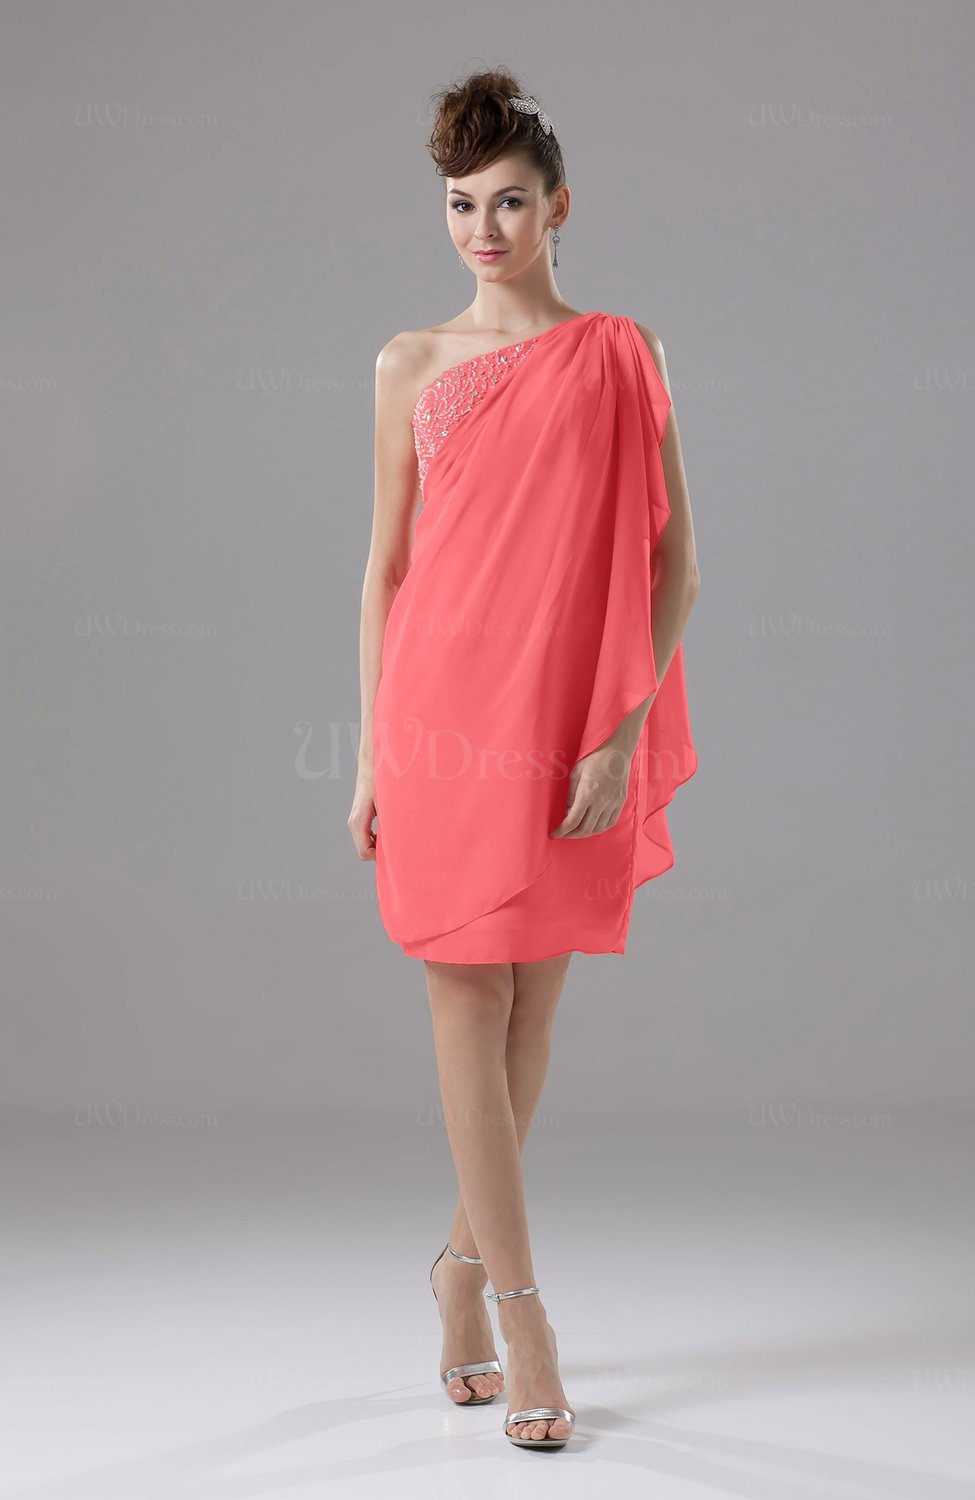 Bridesmaid dresses m uwdress coral cute sheath sleeveless backless knee length cocktail dresses ombrellifo Image collections